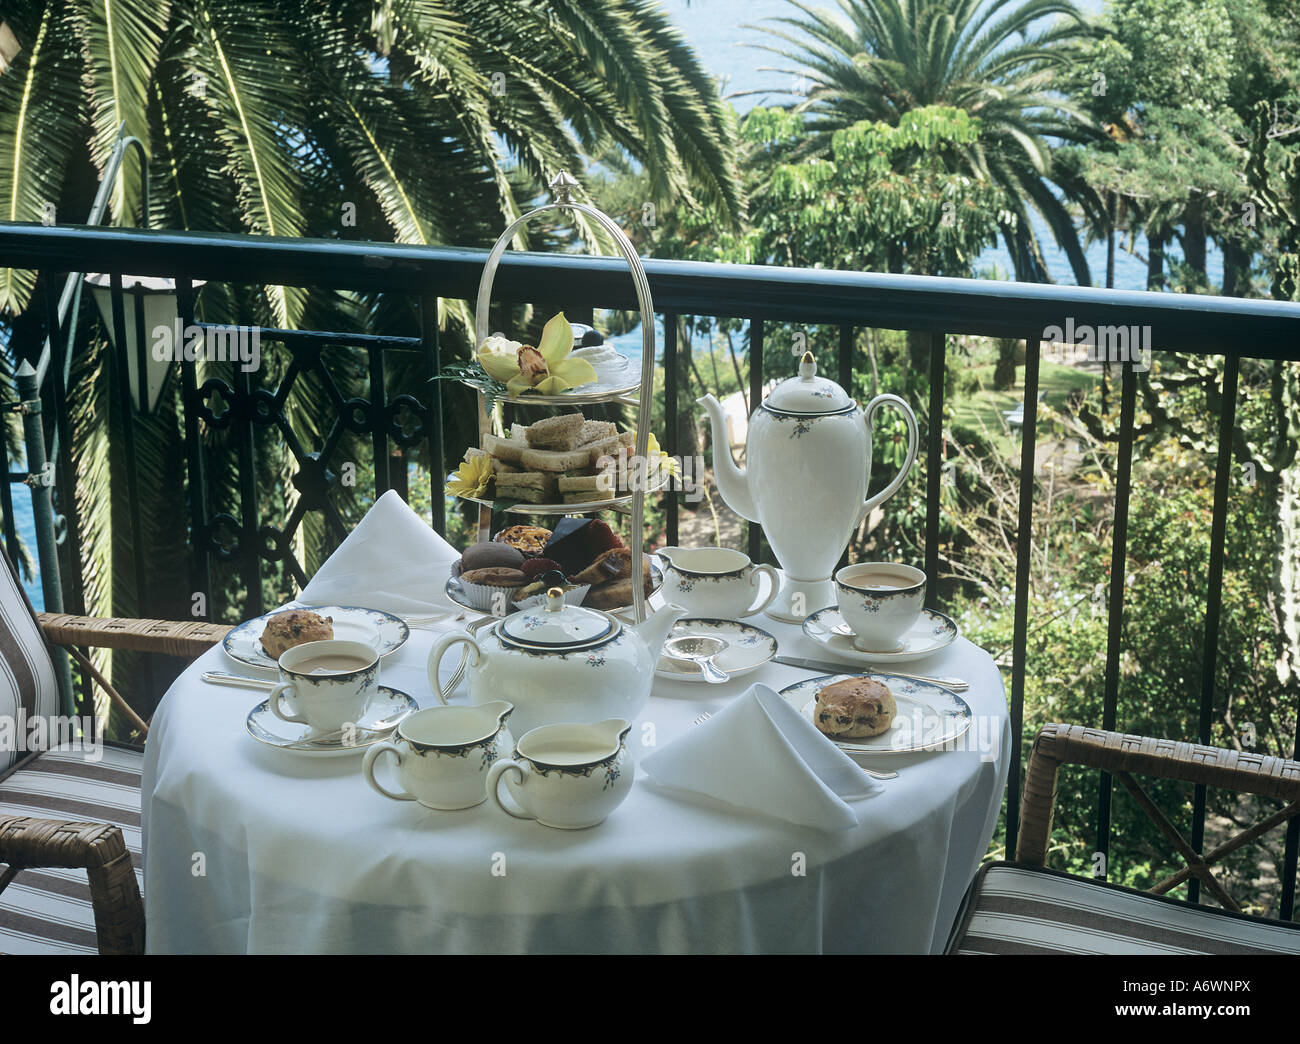 reid 39 s palace hotel madeira afternoon tea luxury hotel tradition stock photo royalty free. Black Bedroom Furniture Sets. Home Design Ideas